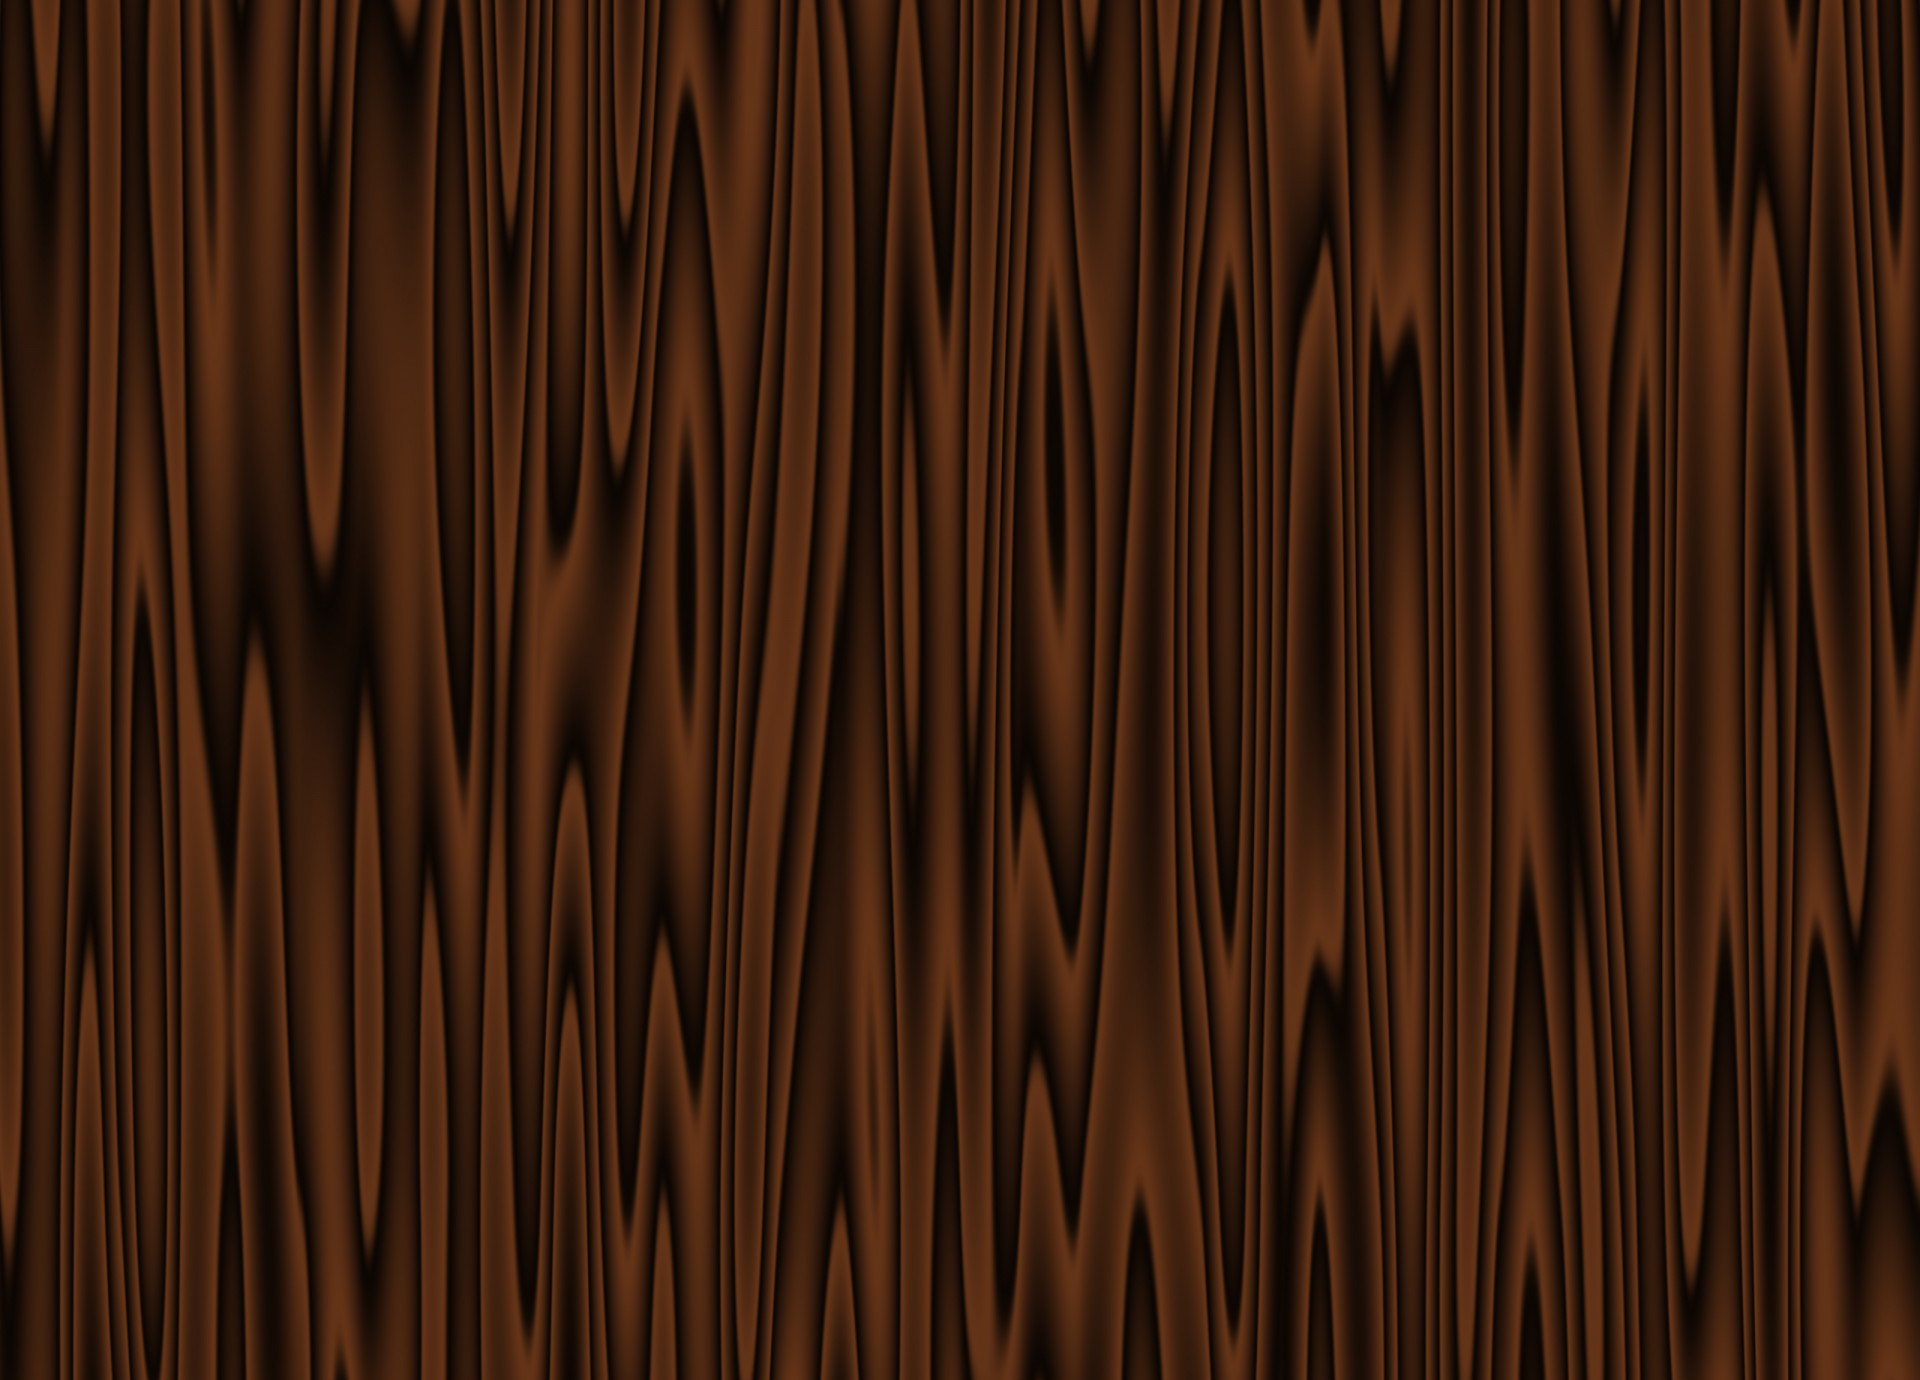 hight resolution of free wood grain cliparts download free clip art free clip art on clipart library